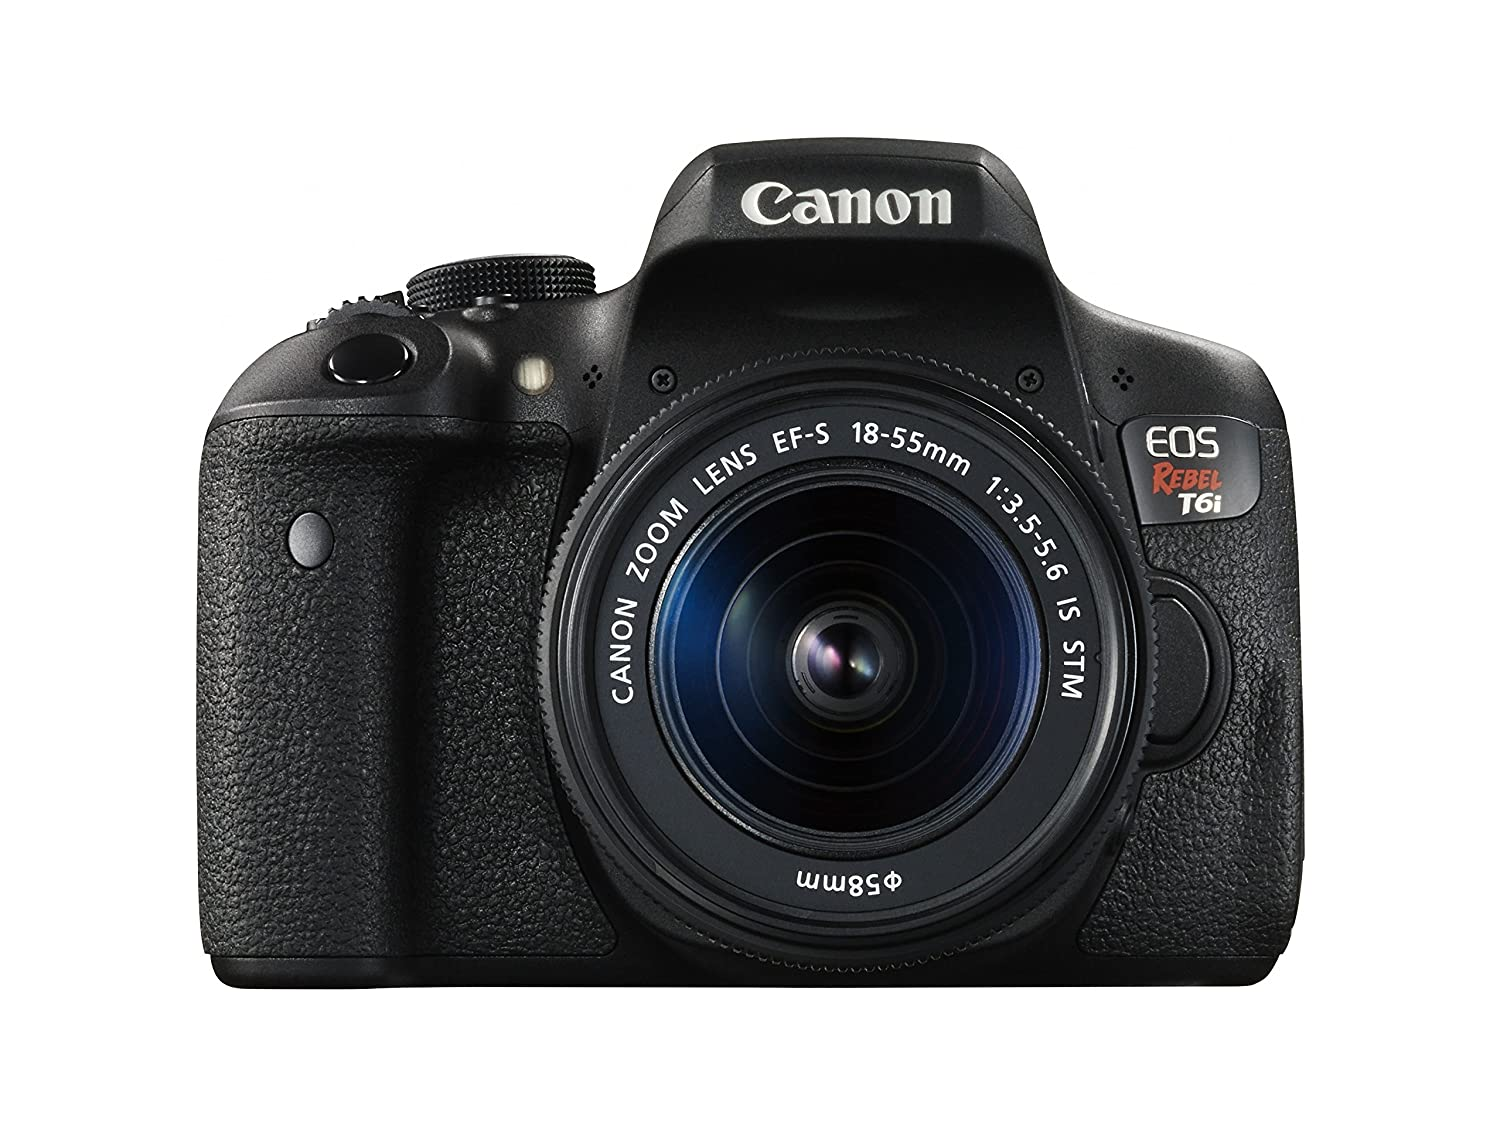 $669.04 (was $1199.99) Canon EOS Rebel T6i Digital SLR with EF-S 18-55mm IS STM Lens – Wi-Fi Enabled